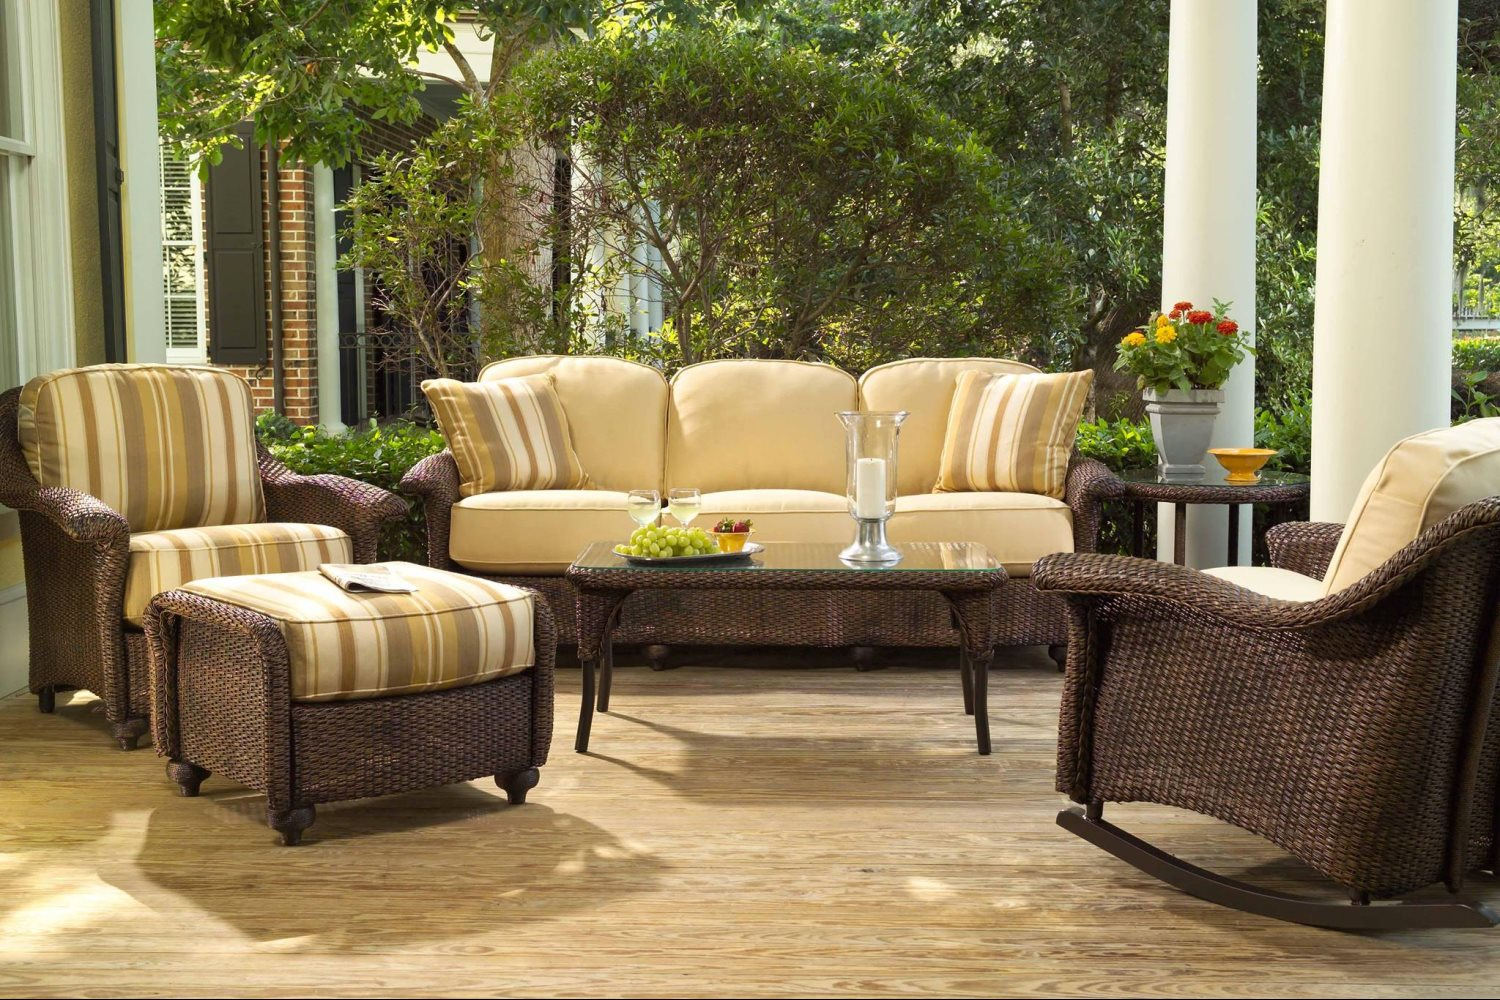 Patio Furniture Outdoor Seating & Dining Patio